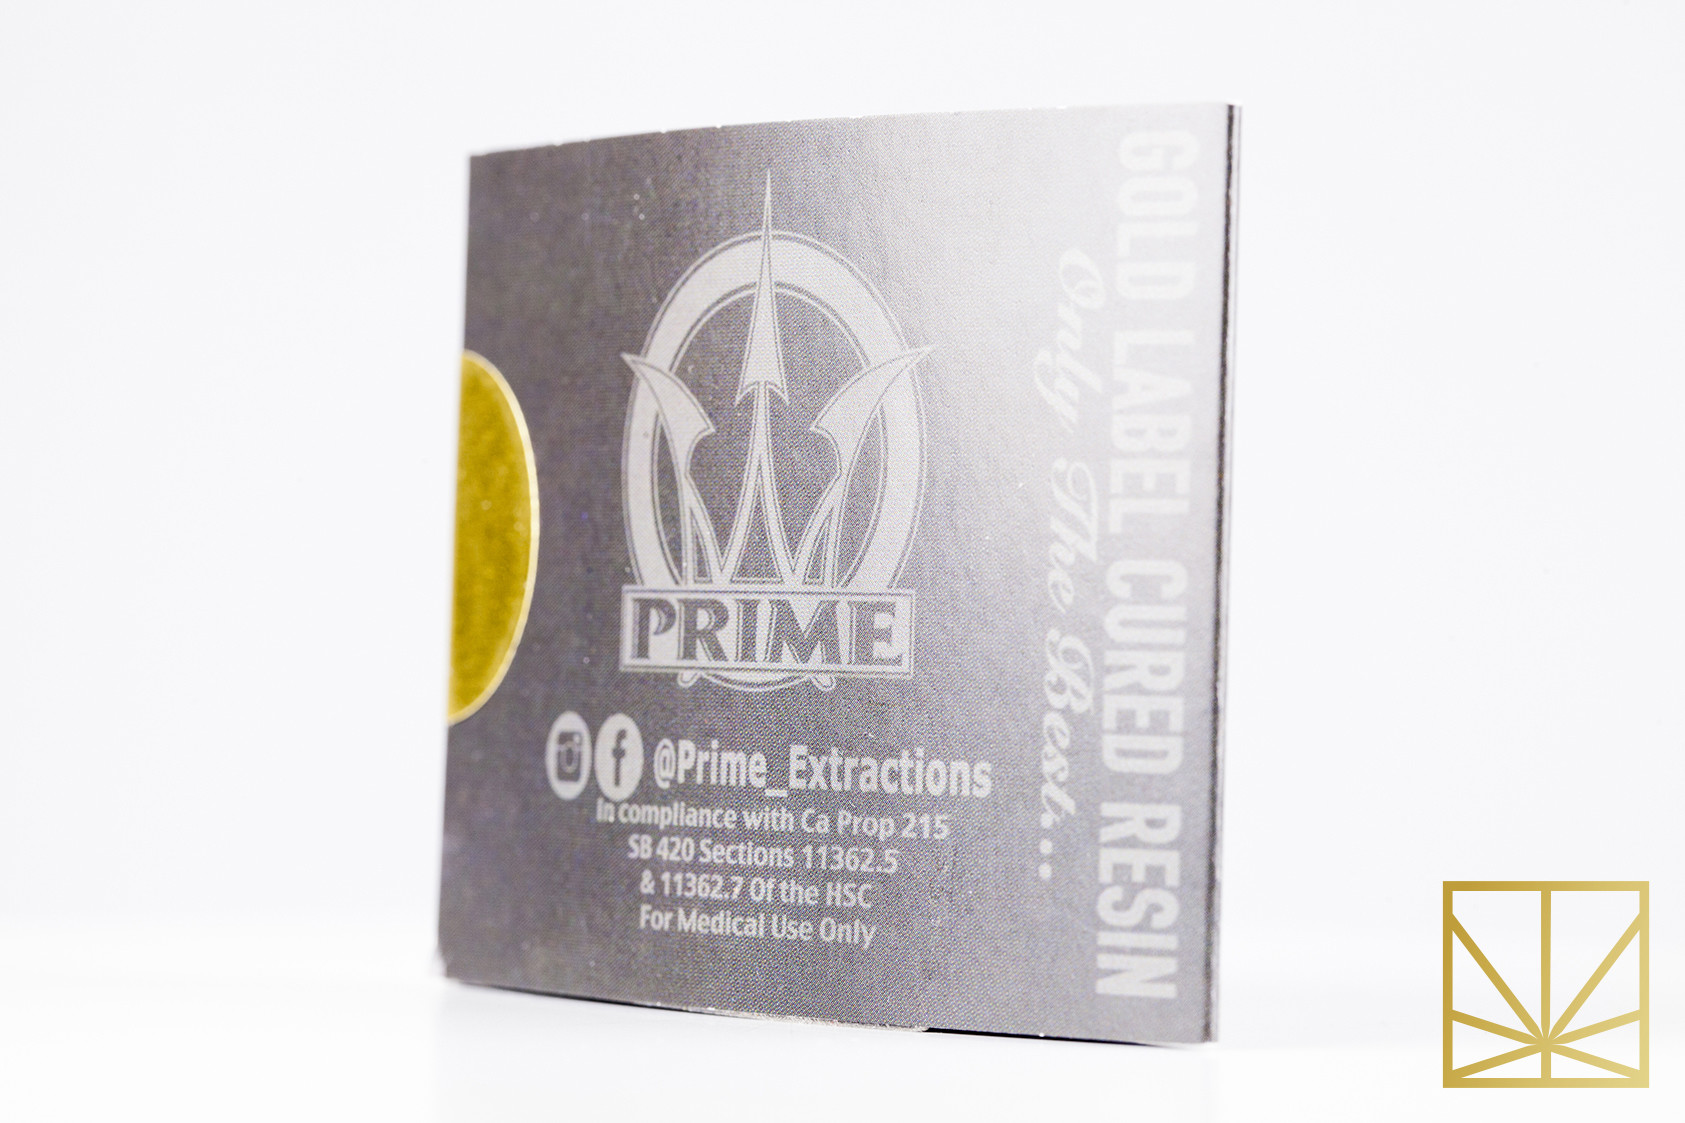 Prime Extractions Banangie Wax